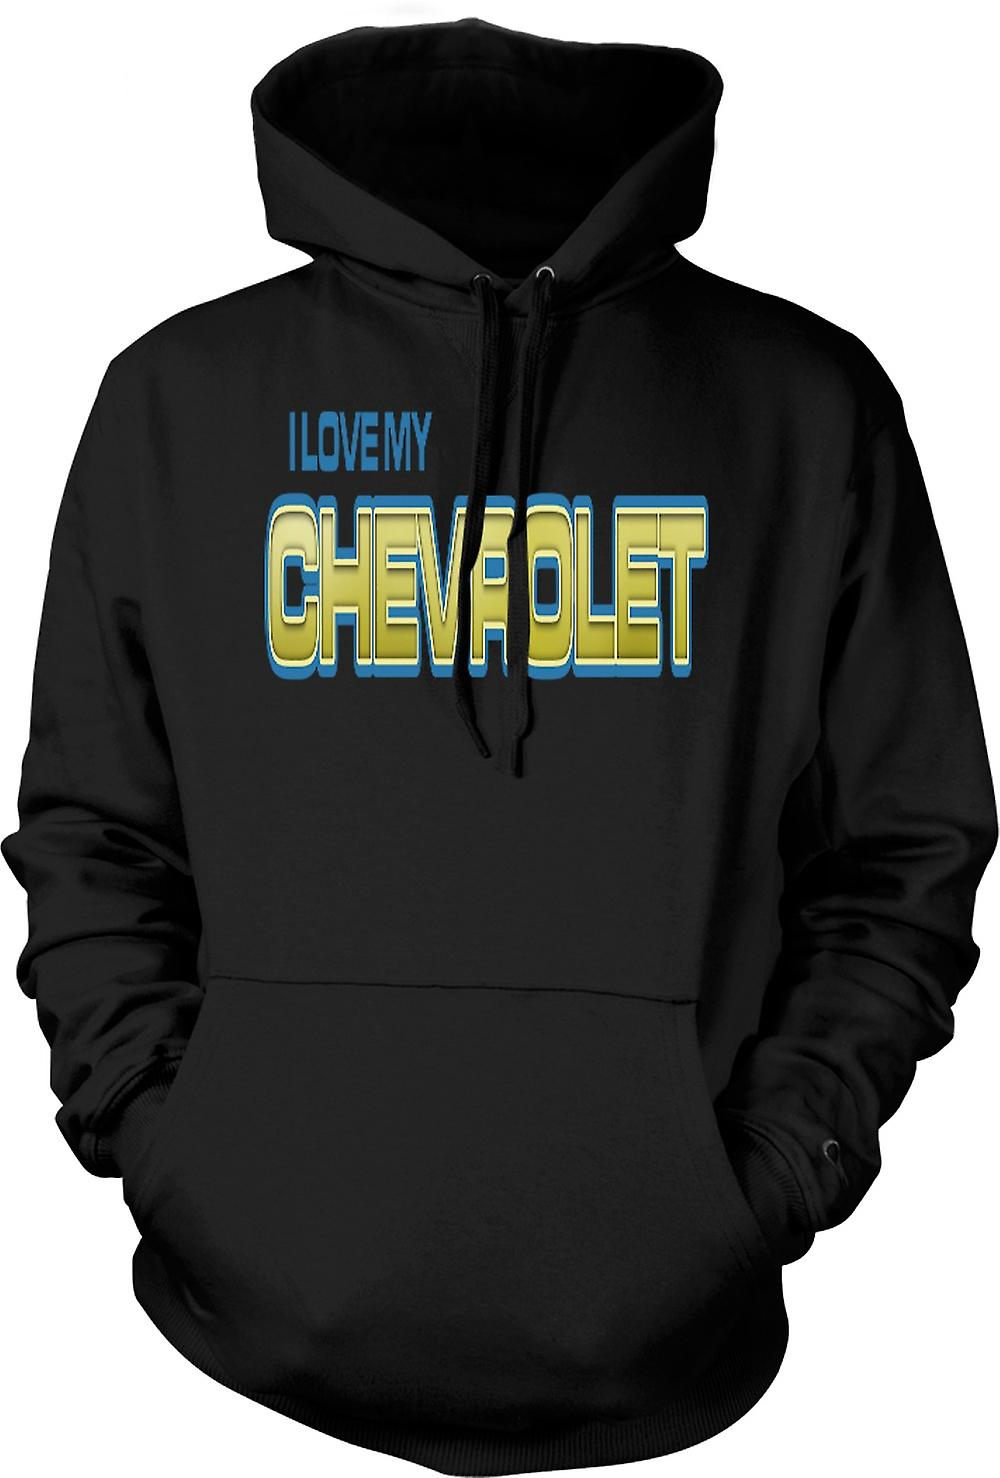 Kids Hoodie - I Love My Chevrolet - Car Enthusiast